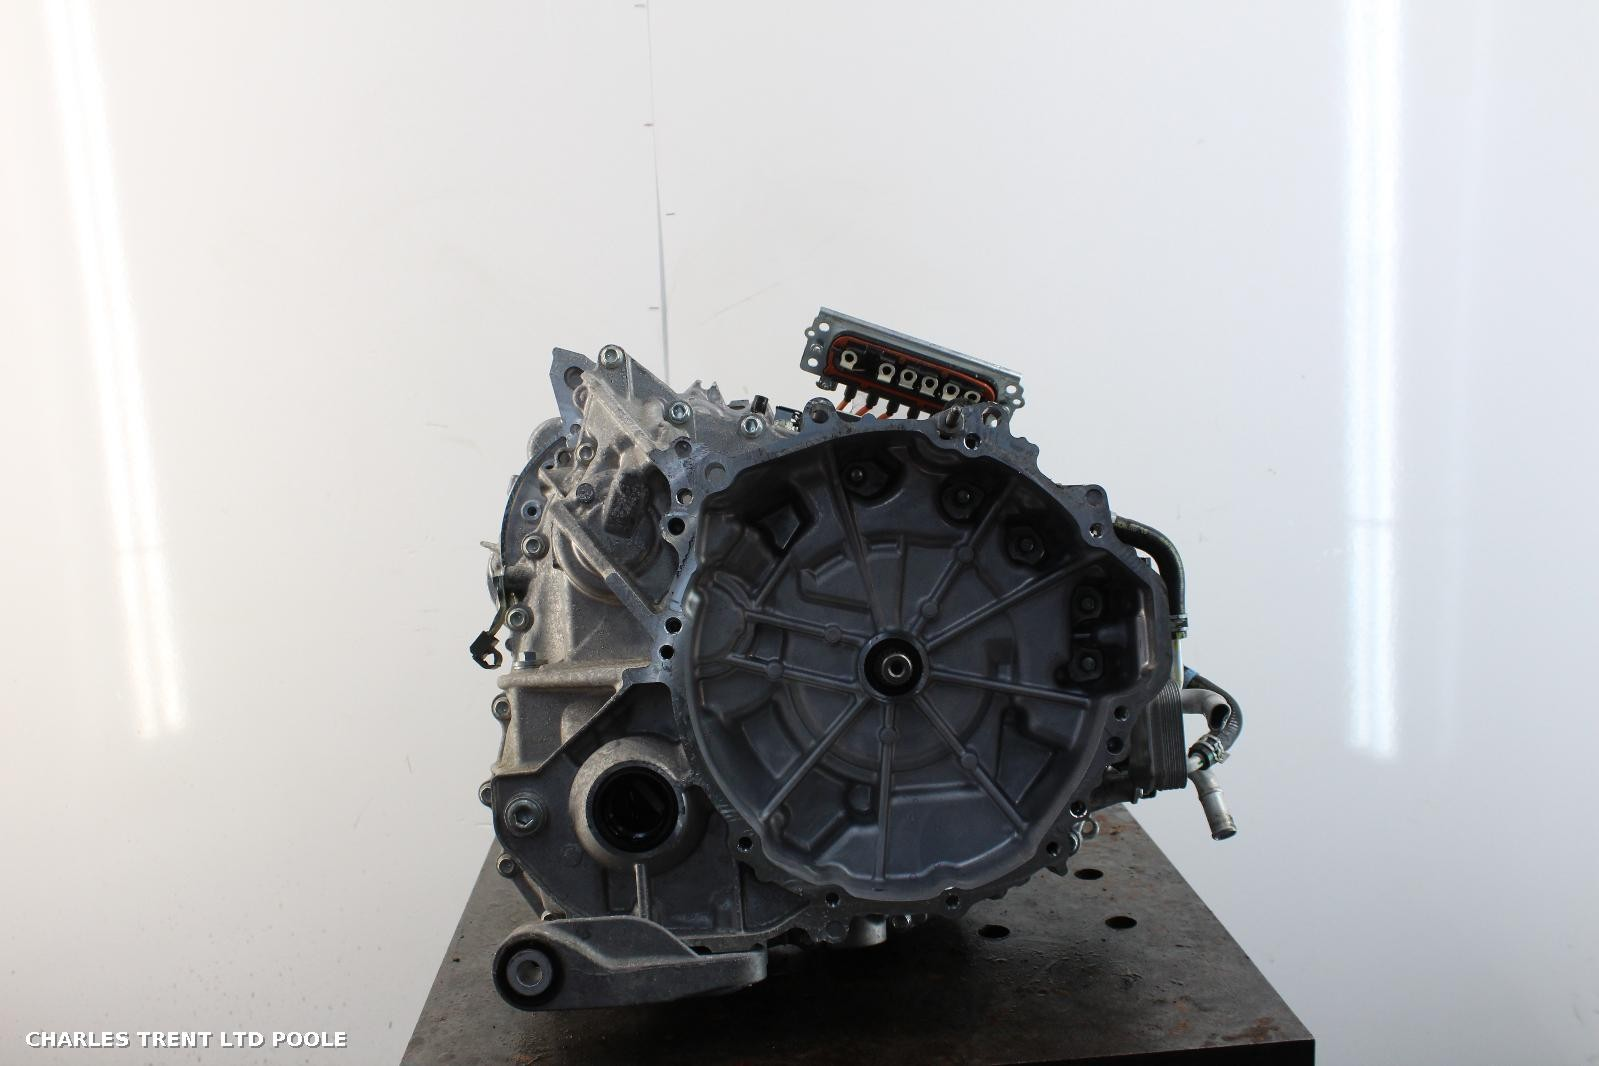 2017 - TOYOTA - PRIUS - GEARBOXES / TRANSMISSIONS